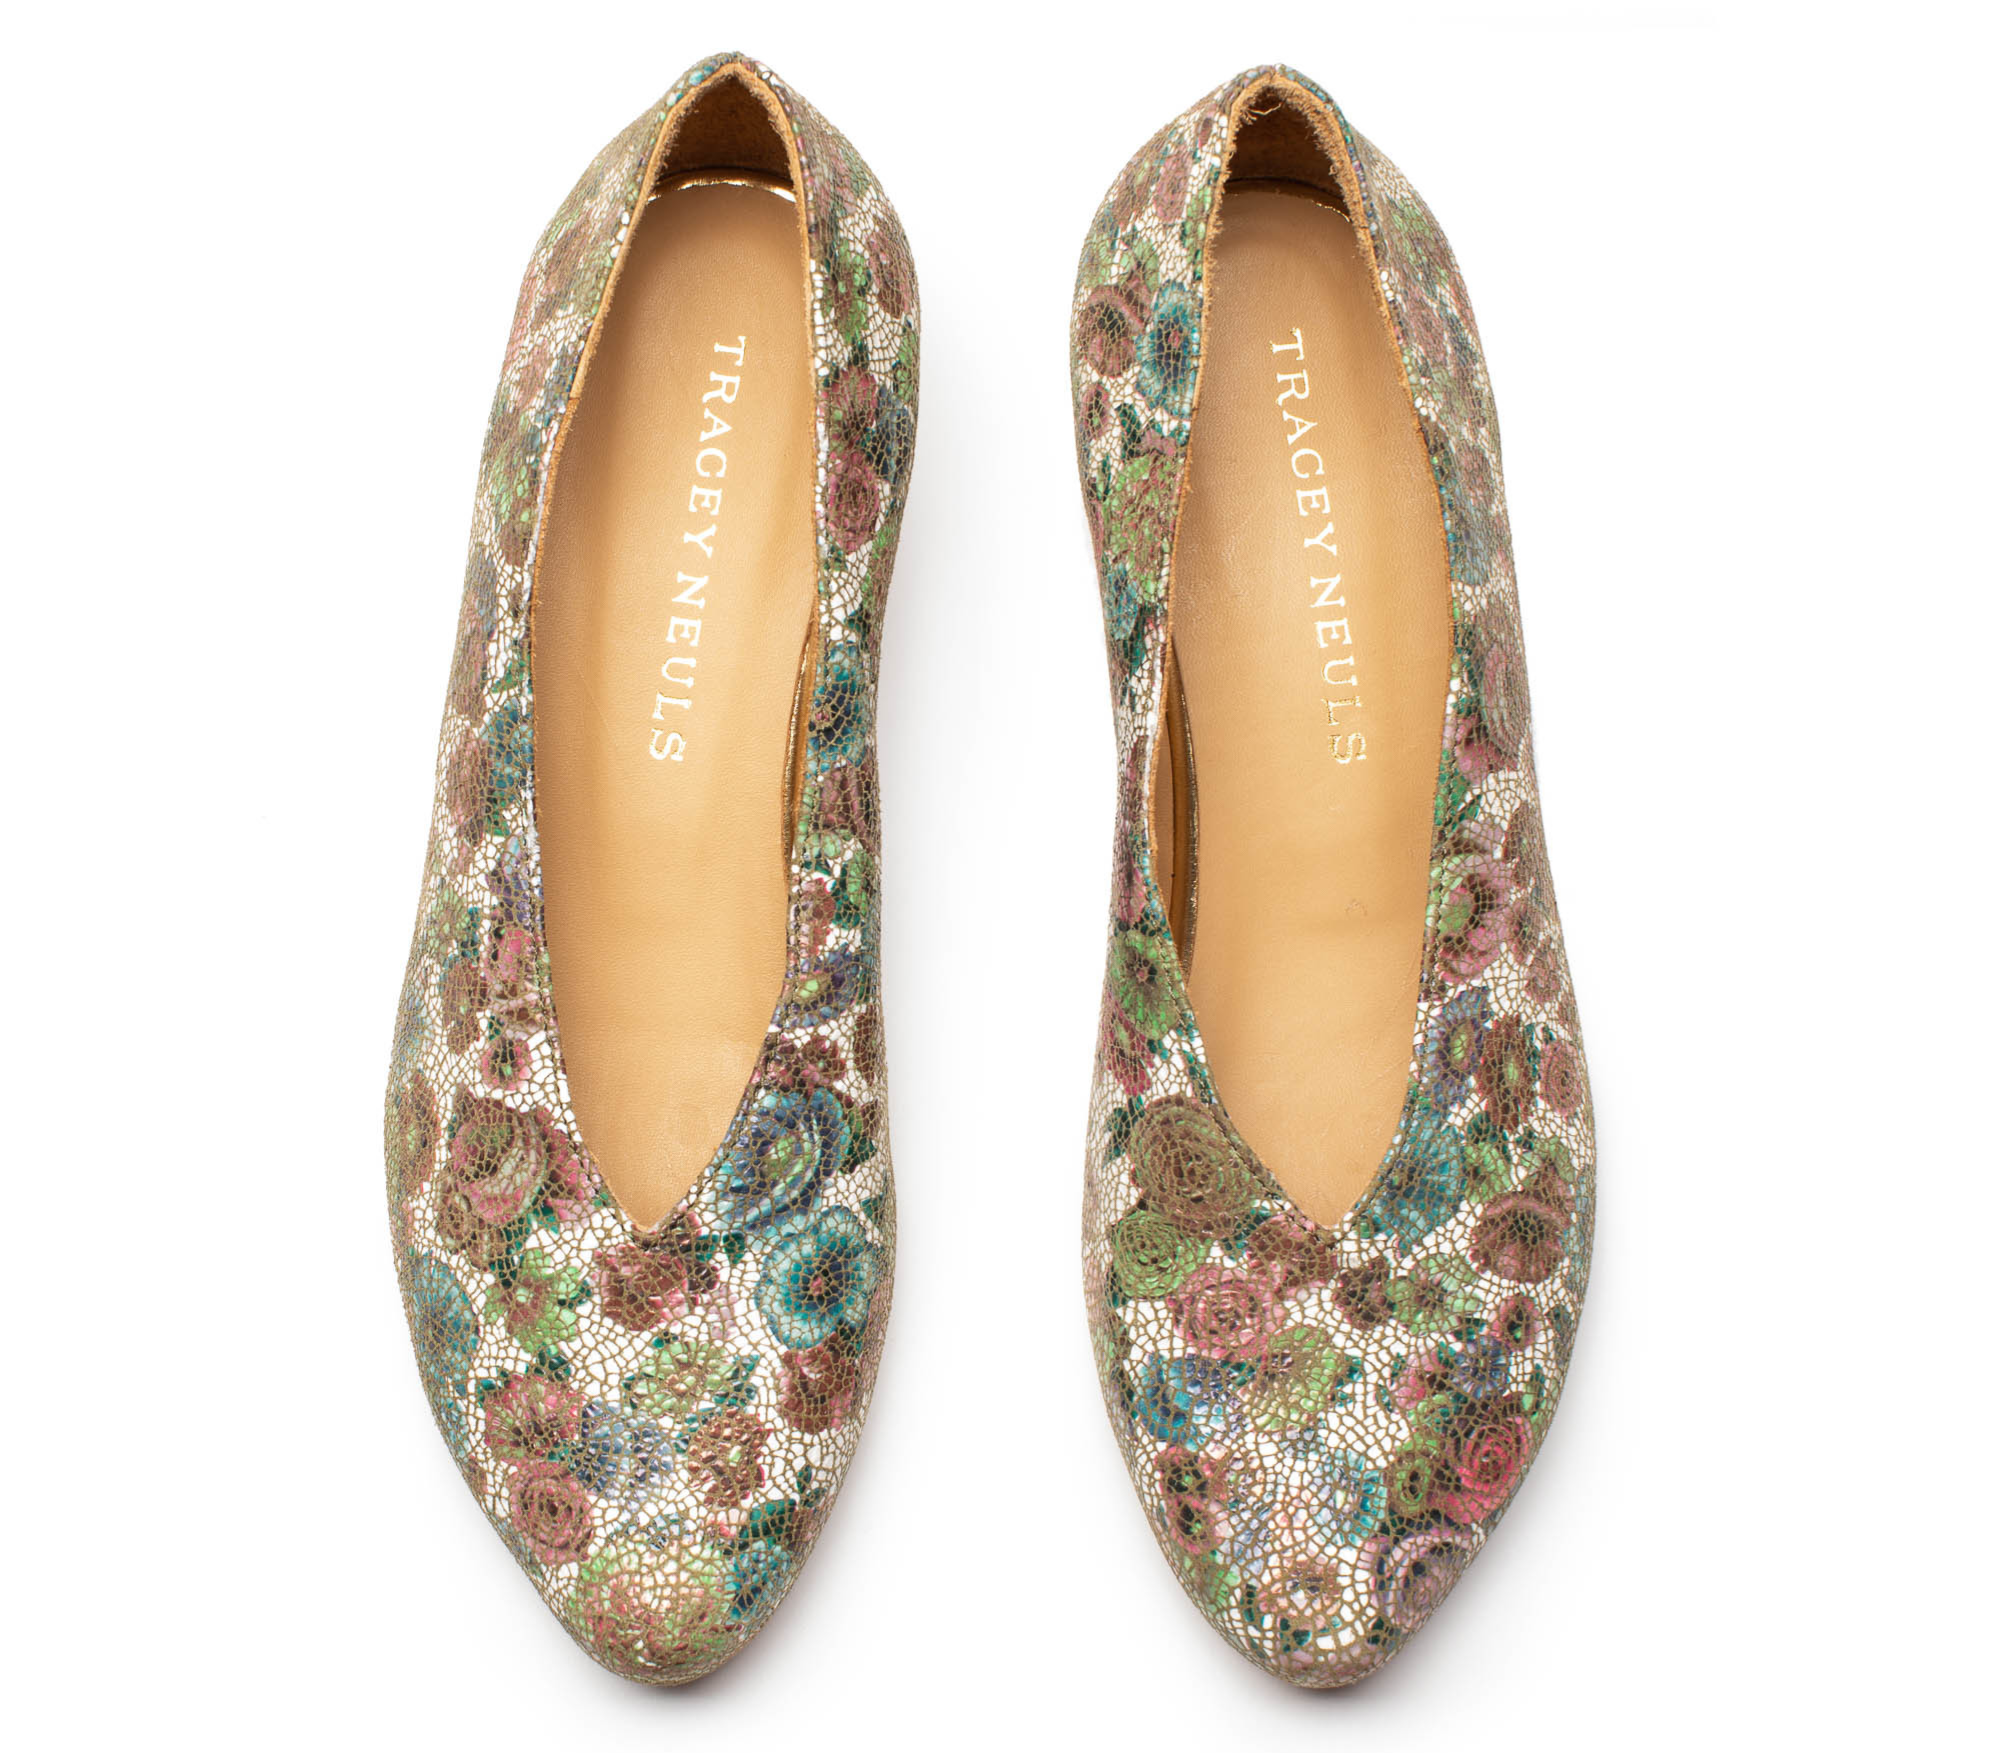 Kieran Wildflower, floral pattern women's designer shoes by Tracey Neuls